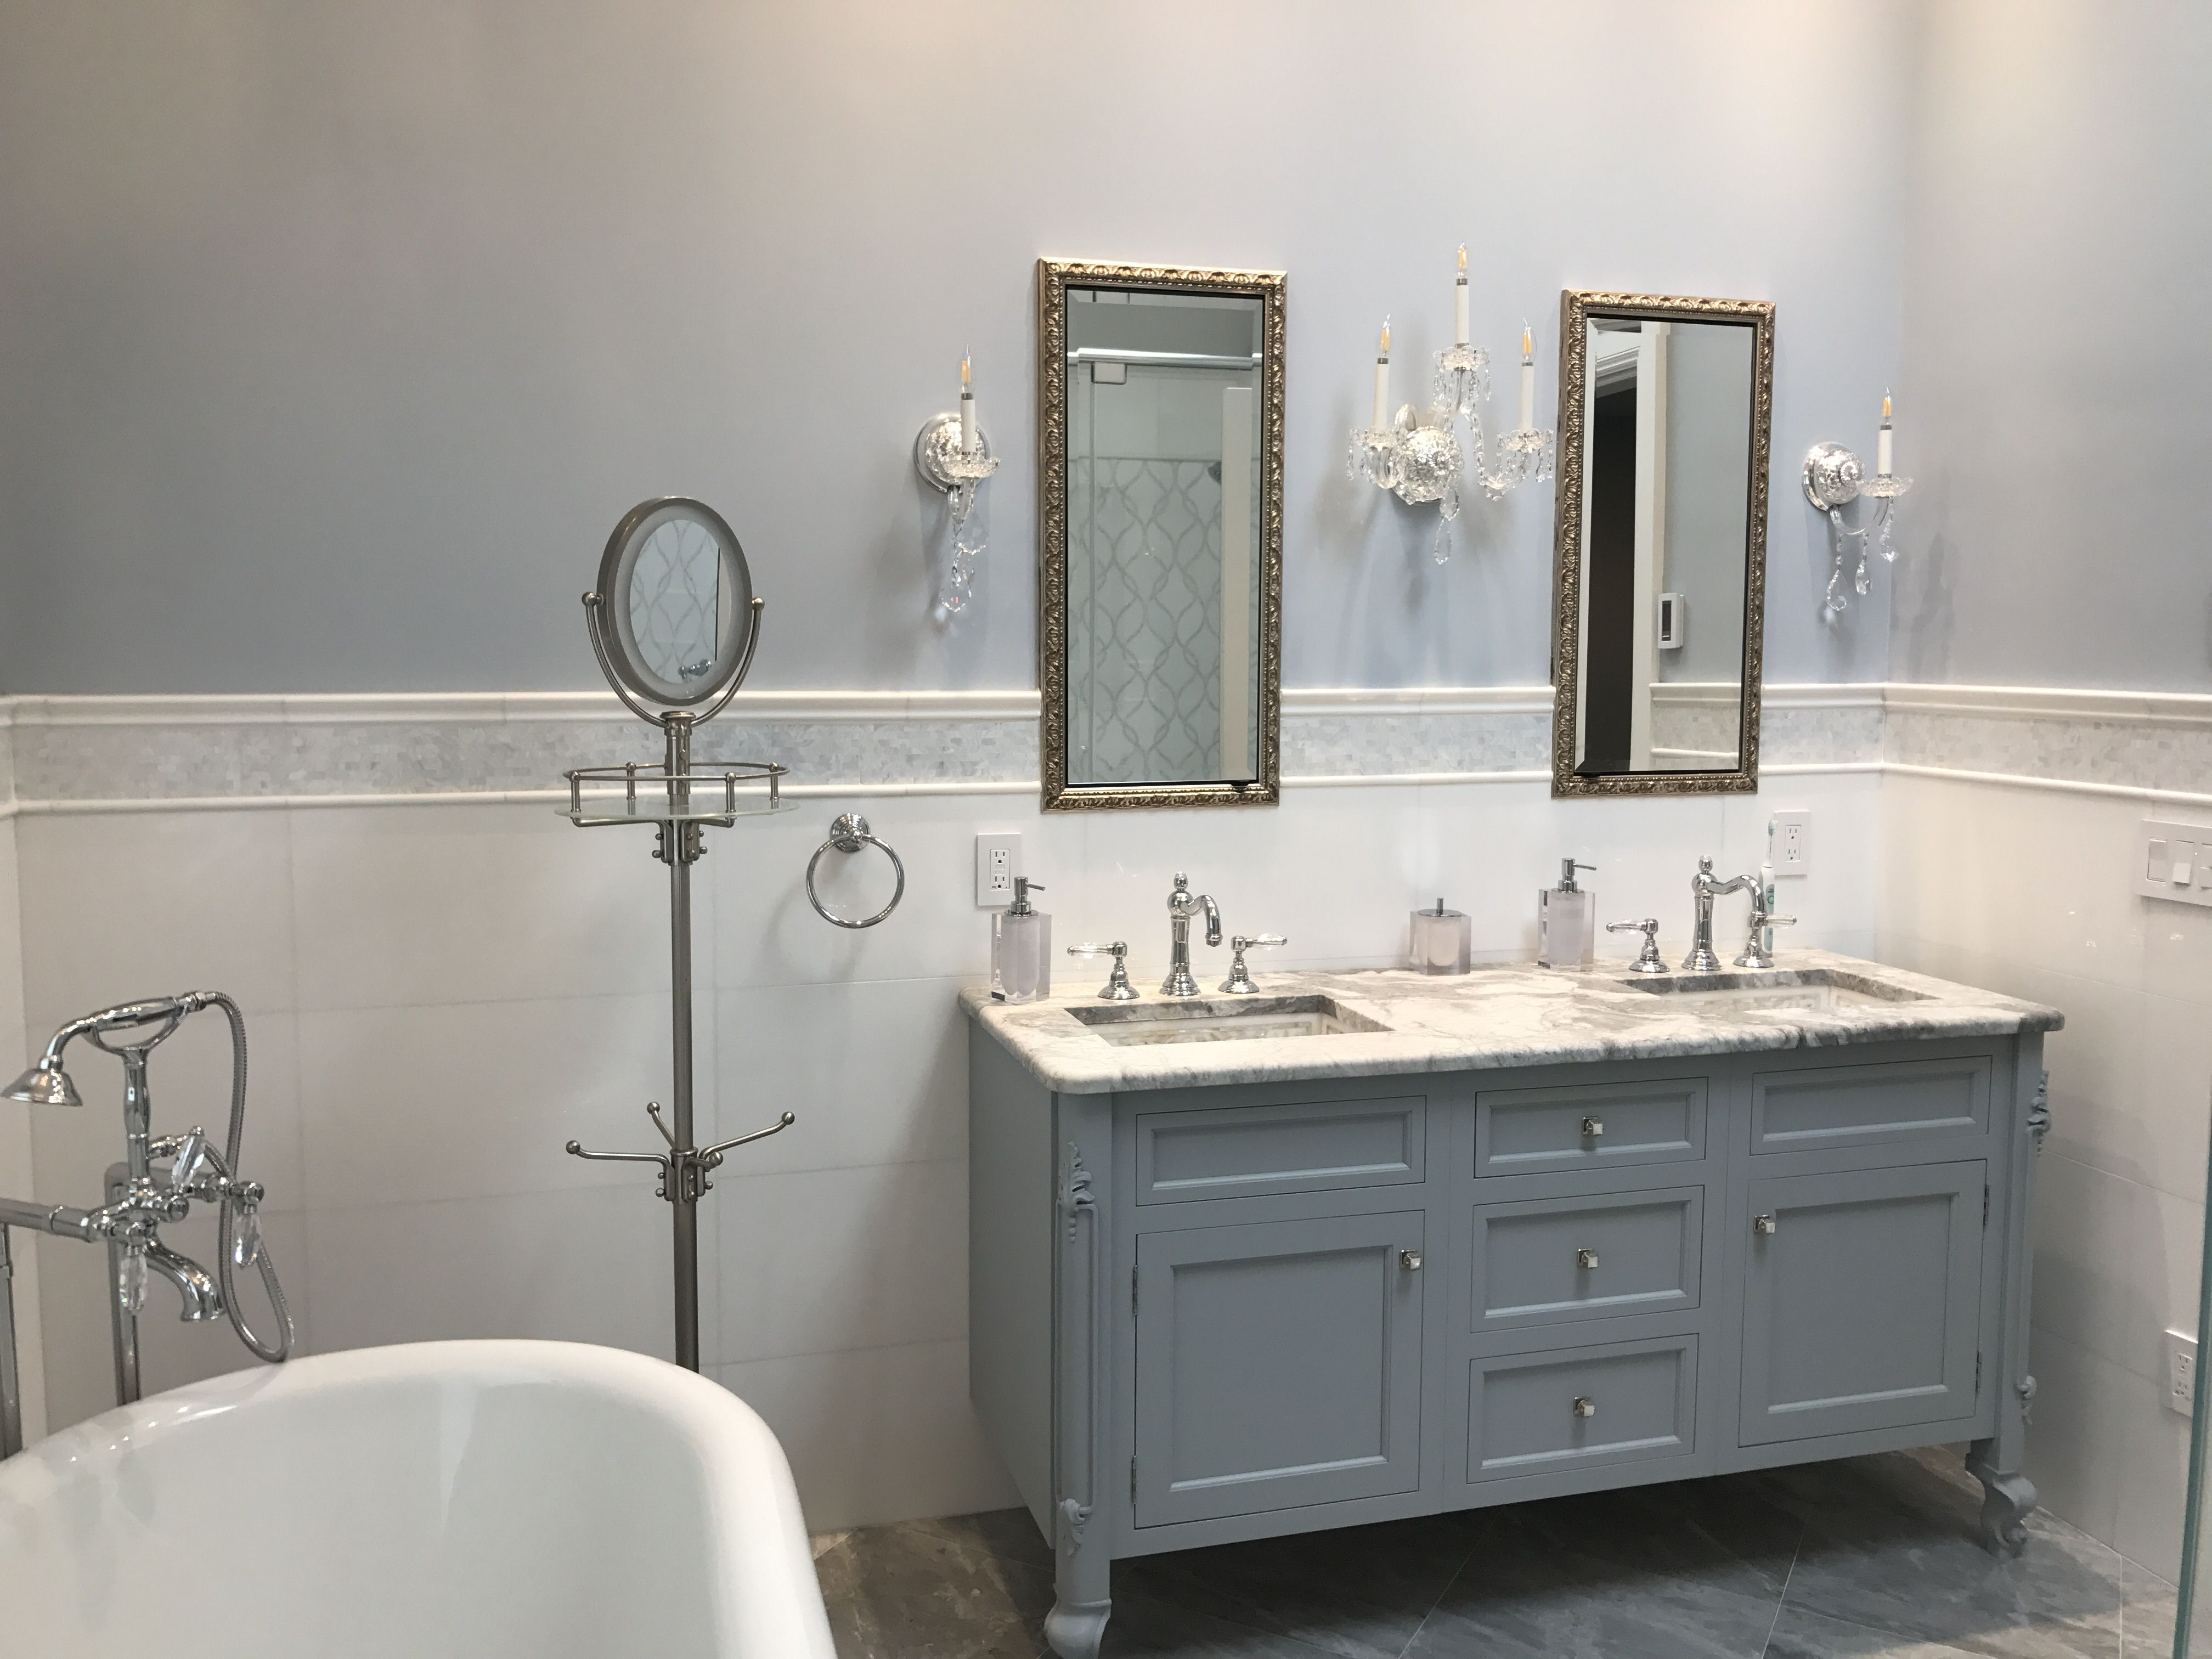 Elite Created This Gorgeous Elegant Bathroom Retreat With @RuttCabinetry